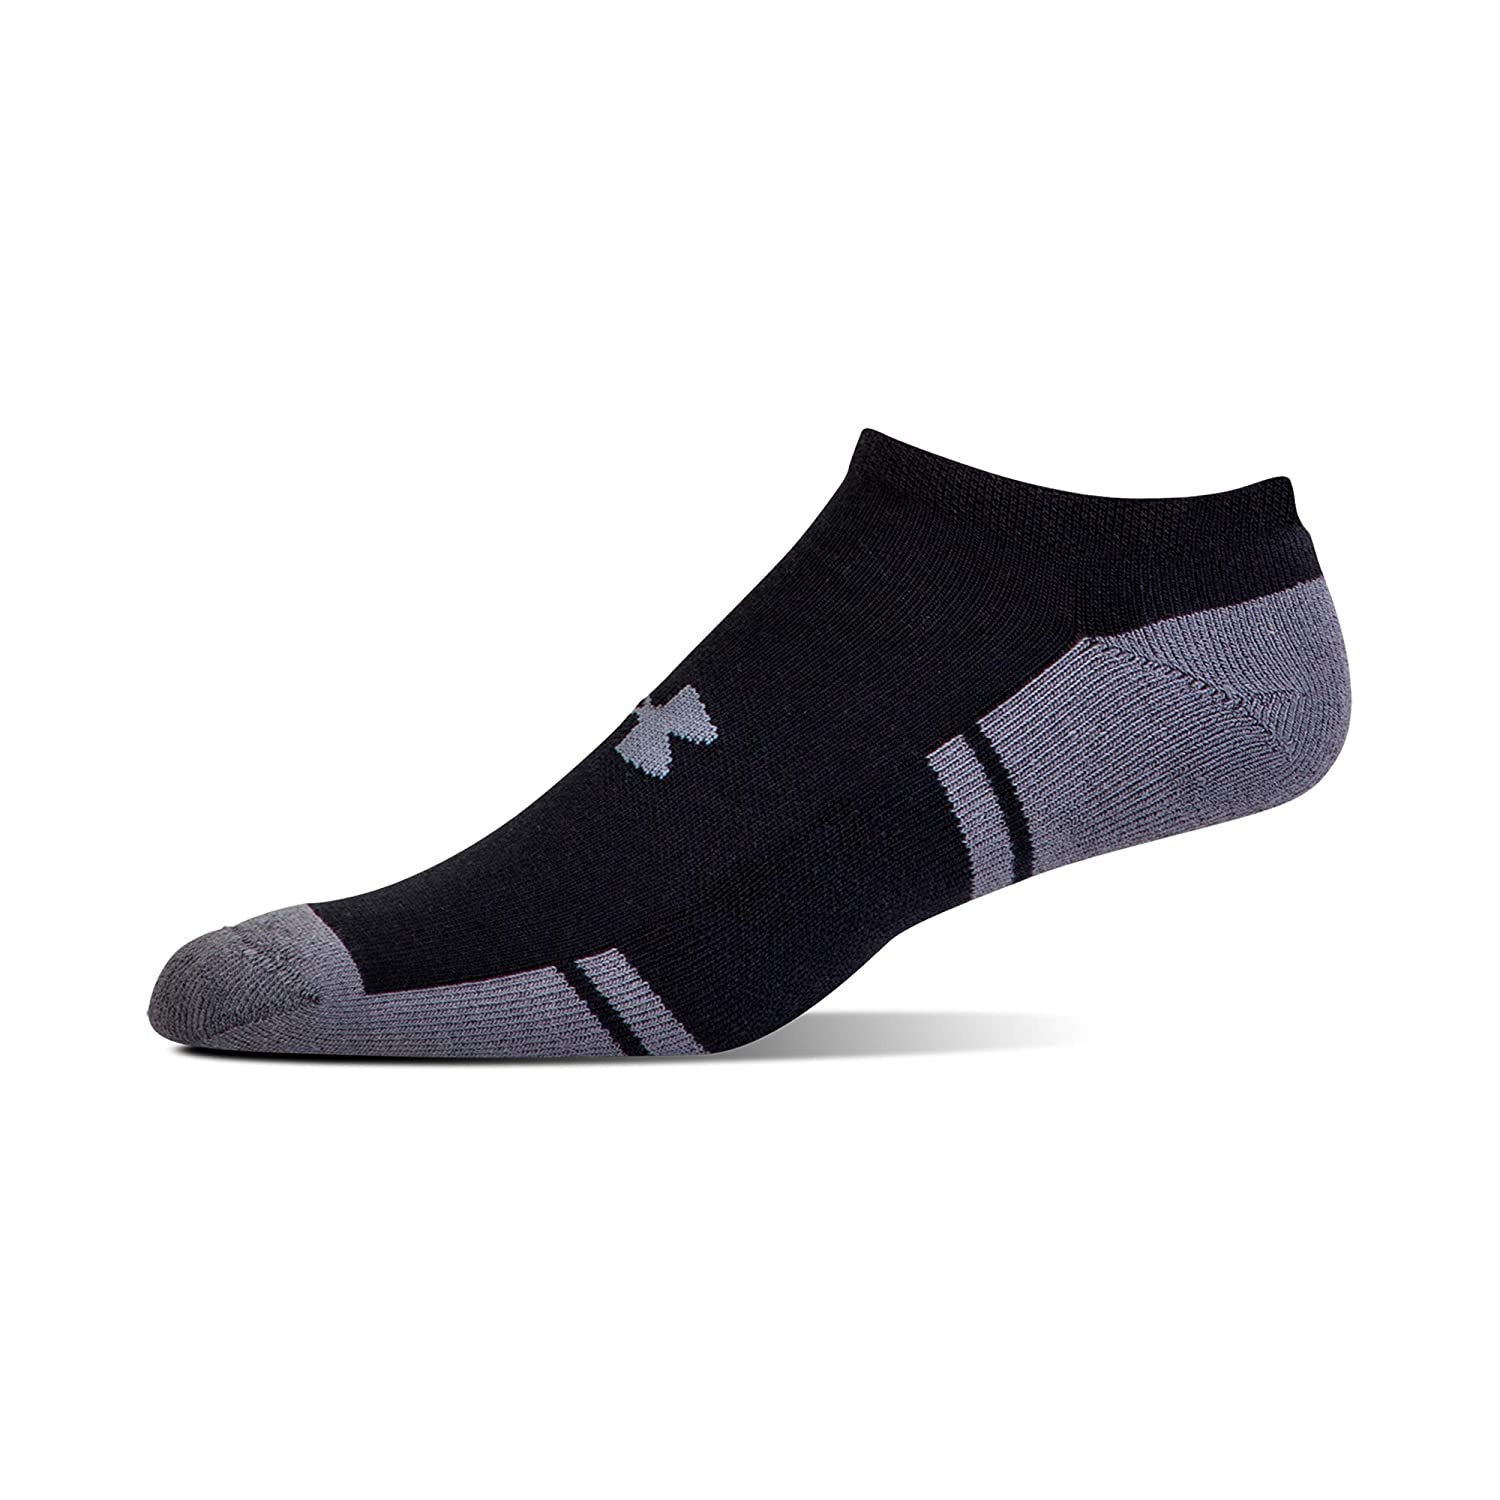 6 Pairs Under Armour Adult Resistor 3.0 No Show Socks